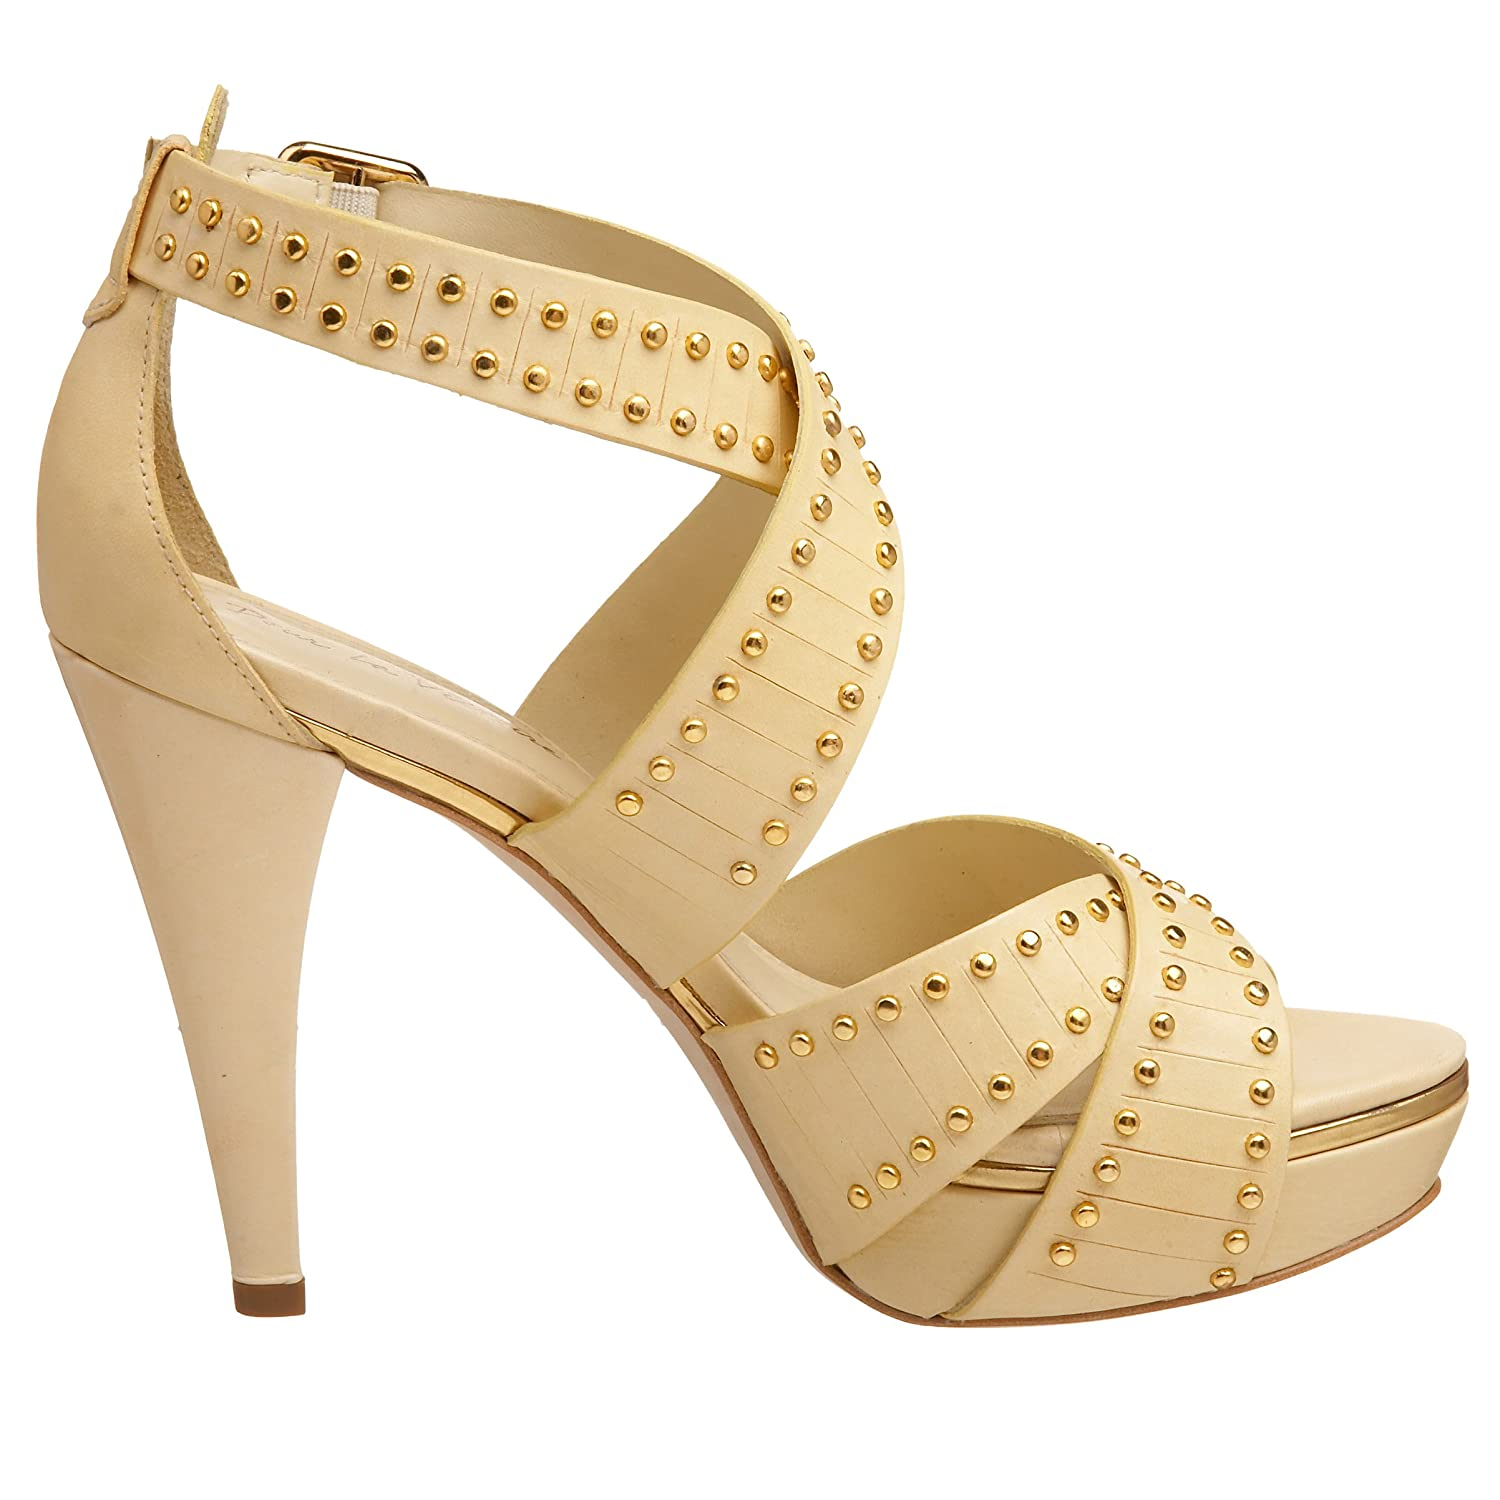 Pour La Victoire Ange Platform Sandal - Free Overnight Shipping & Return Shipping: Endless.com from endless.com